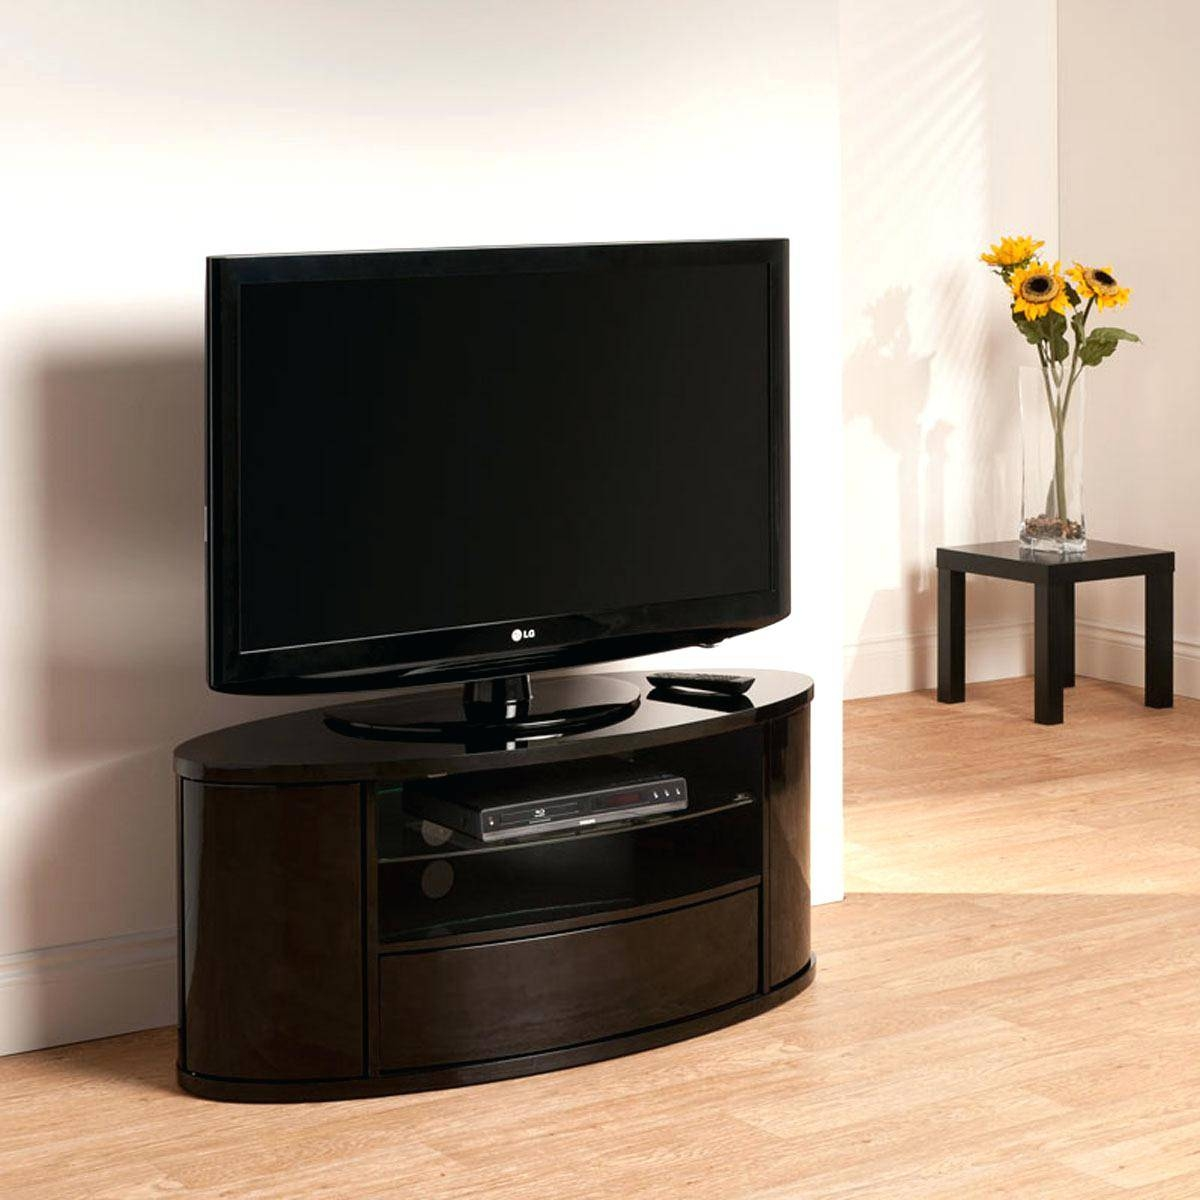 Tv Stand: Chic Tv Stand 50 Inch For Home Space. Corner Tv Stand 50 with regard to Tv Stands 38 Inches Wide (Image 11 of 15)